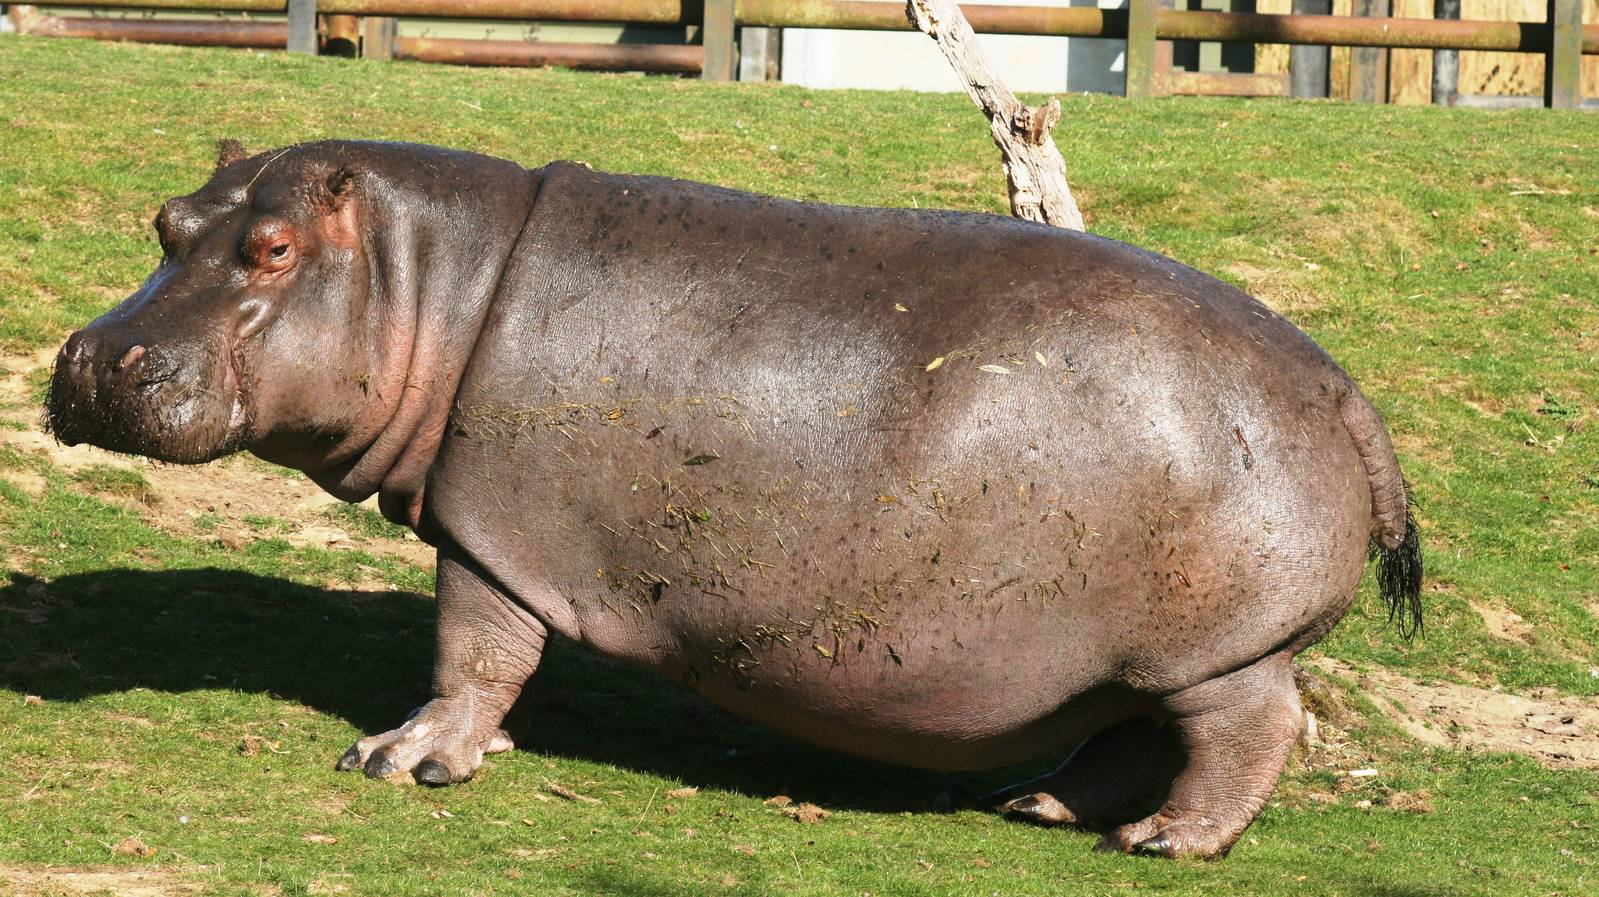 Big Fat Hippopotamus 858.06 Kb